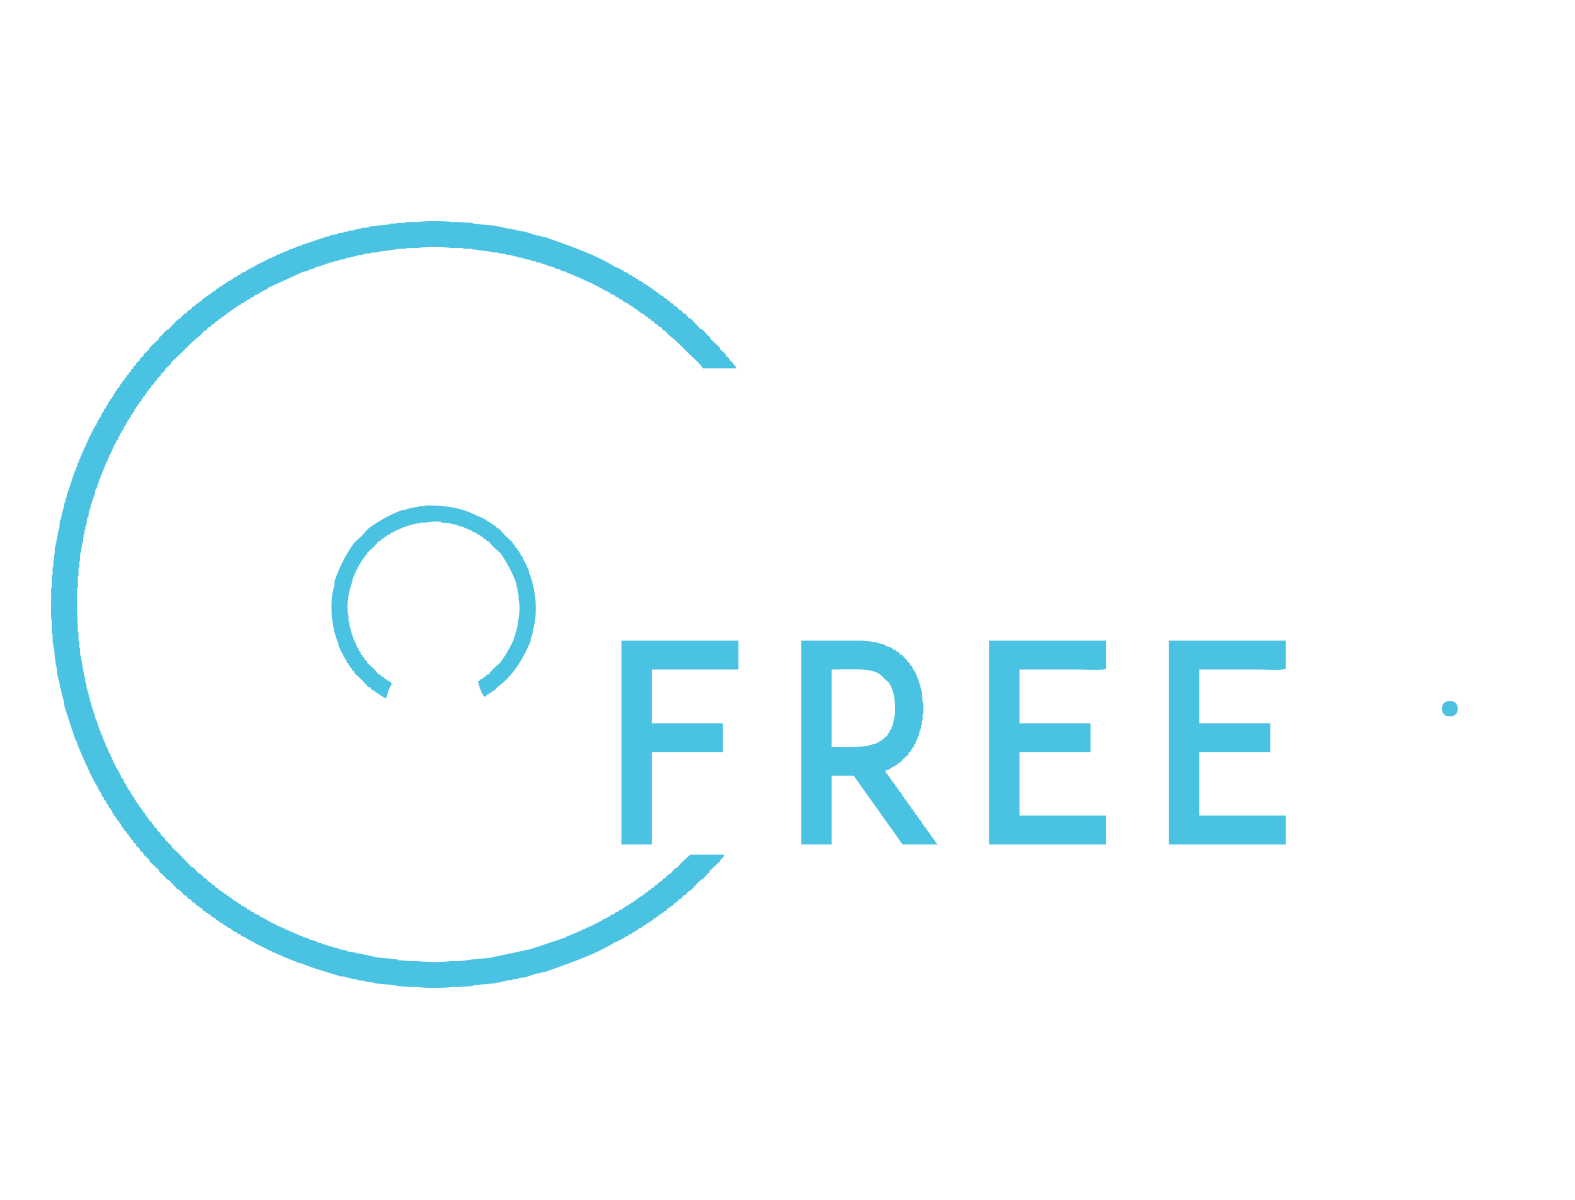 Radio-Free-Bumper-Sticker.png